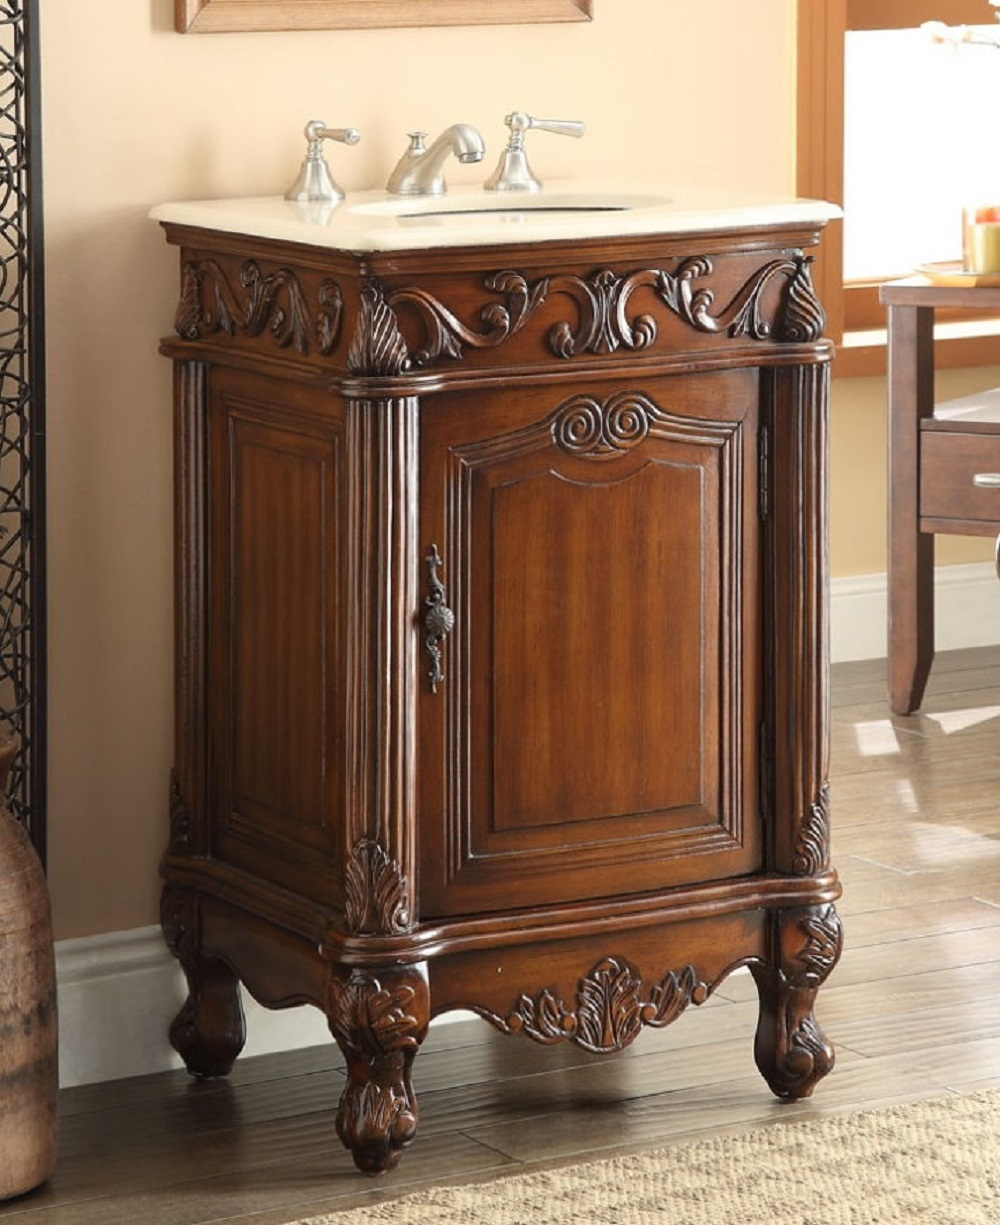 21 Inch Bathroom Vanity Traditional Style Medium Brown Color 21wx21dx34h Ccf2801mtk